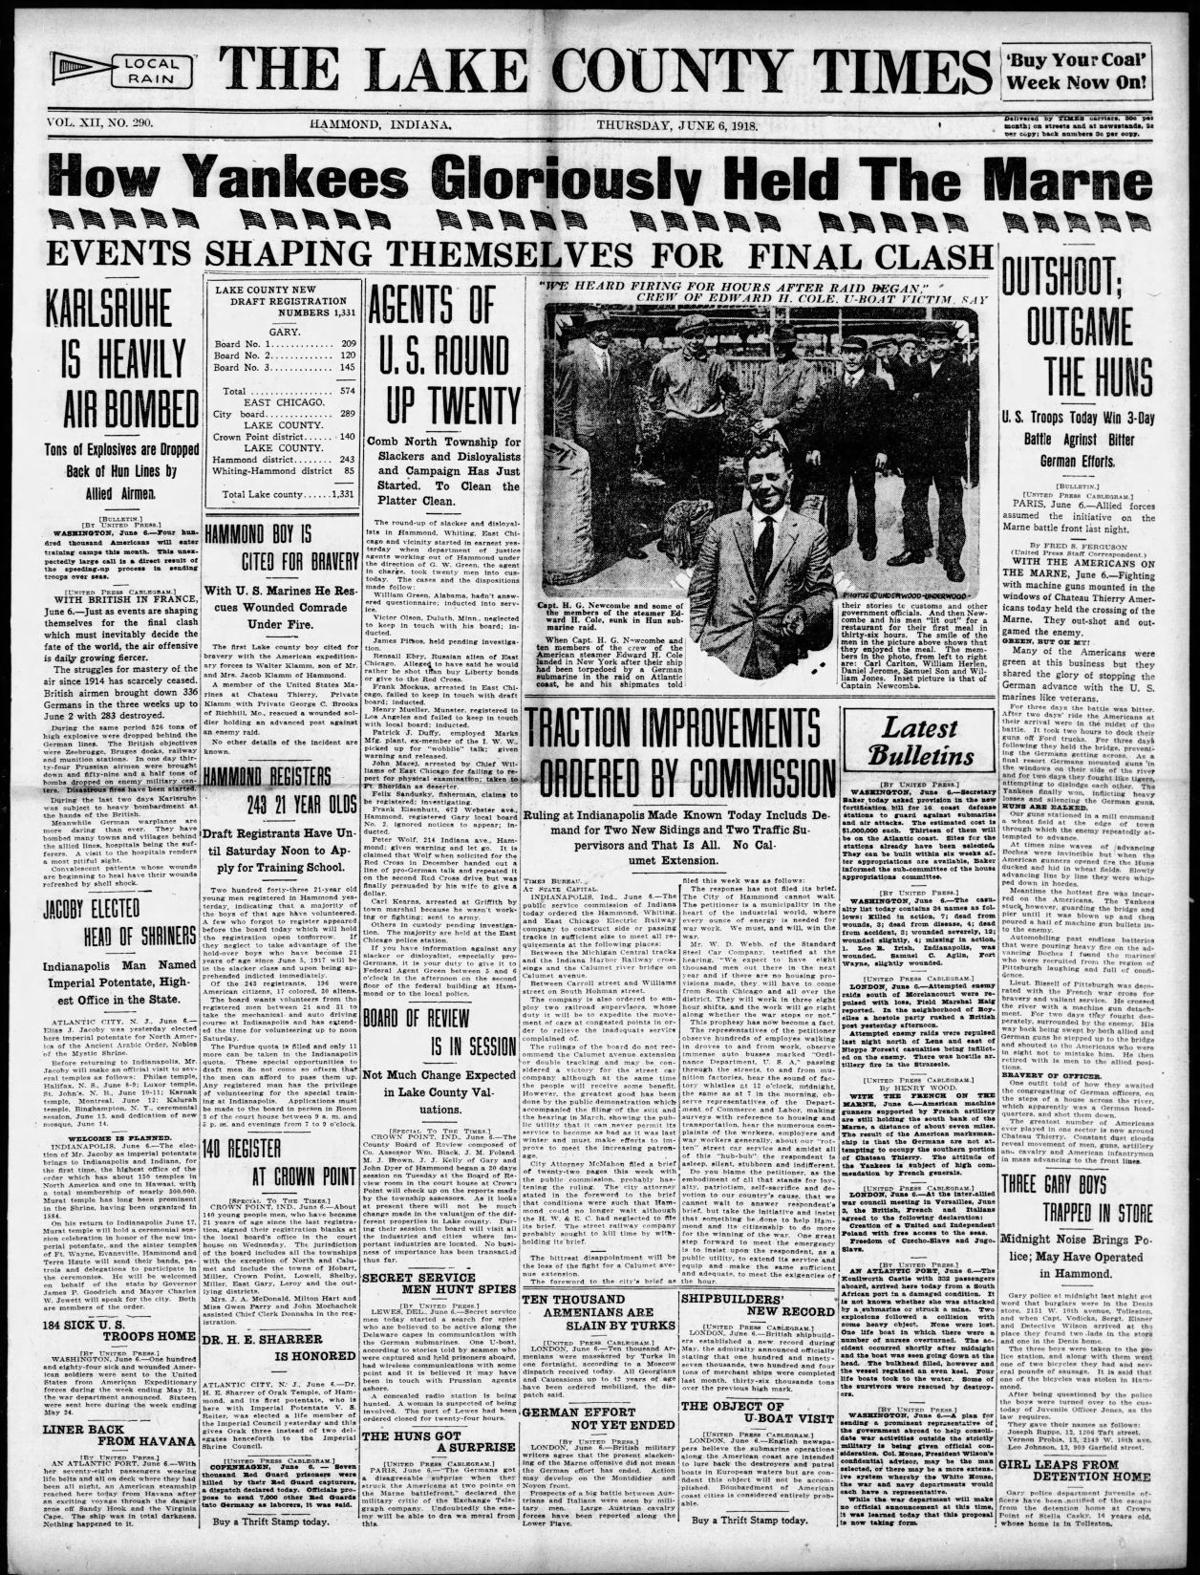 June 6, 1918: Three Gary Boys Trapped In Store